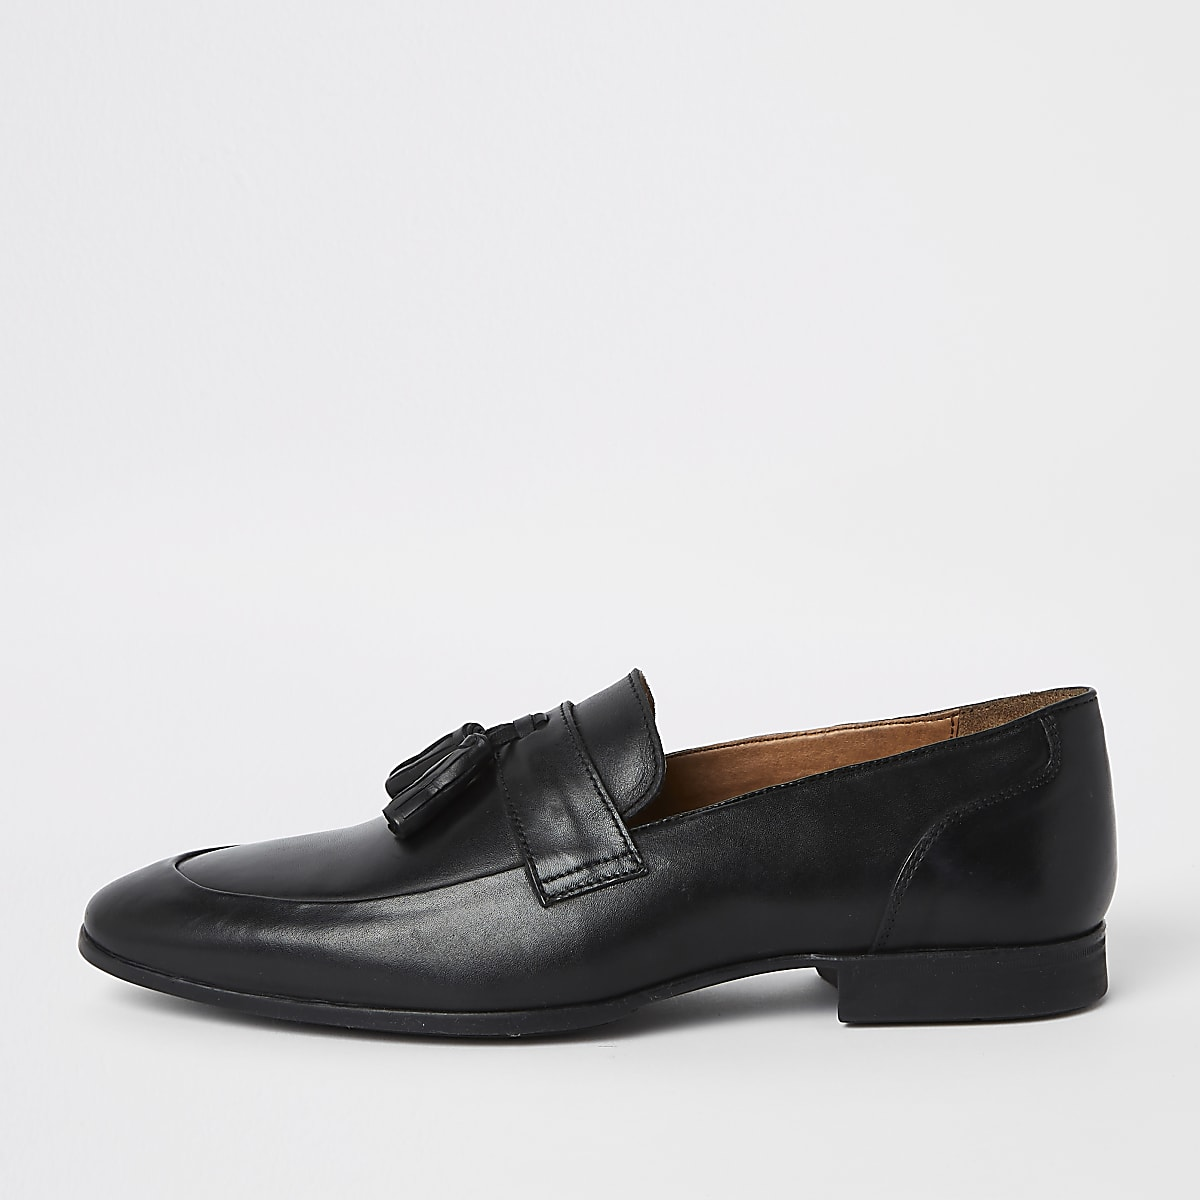 Black leather tassel smart loafers